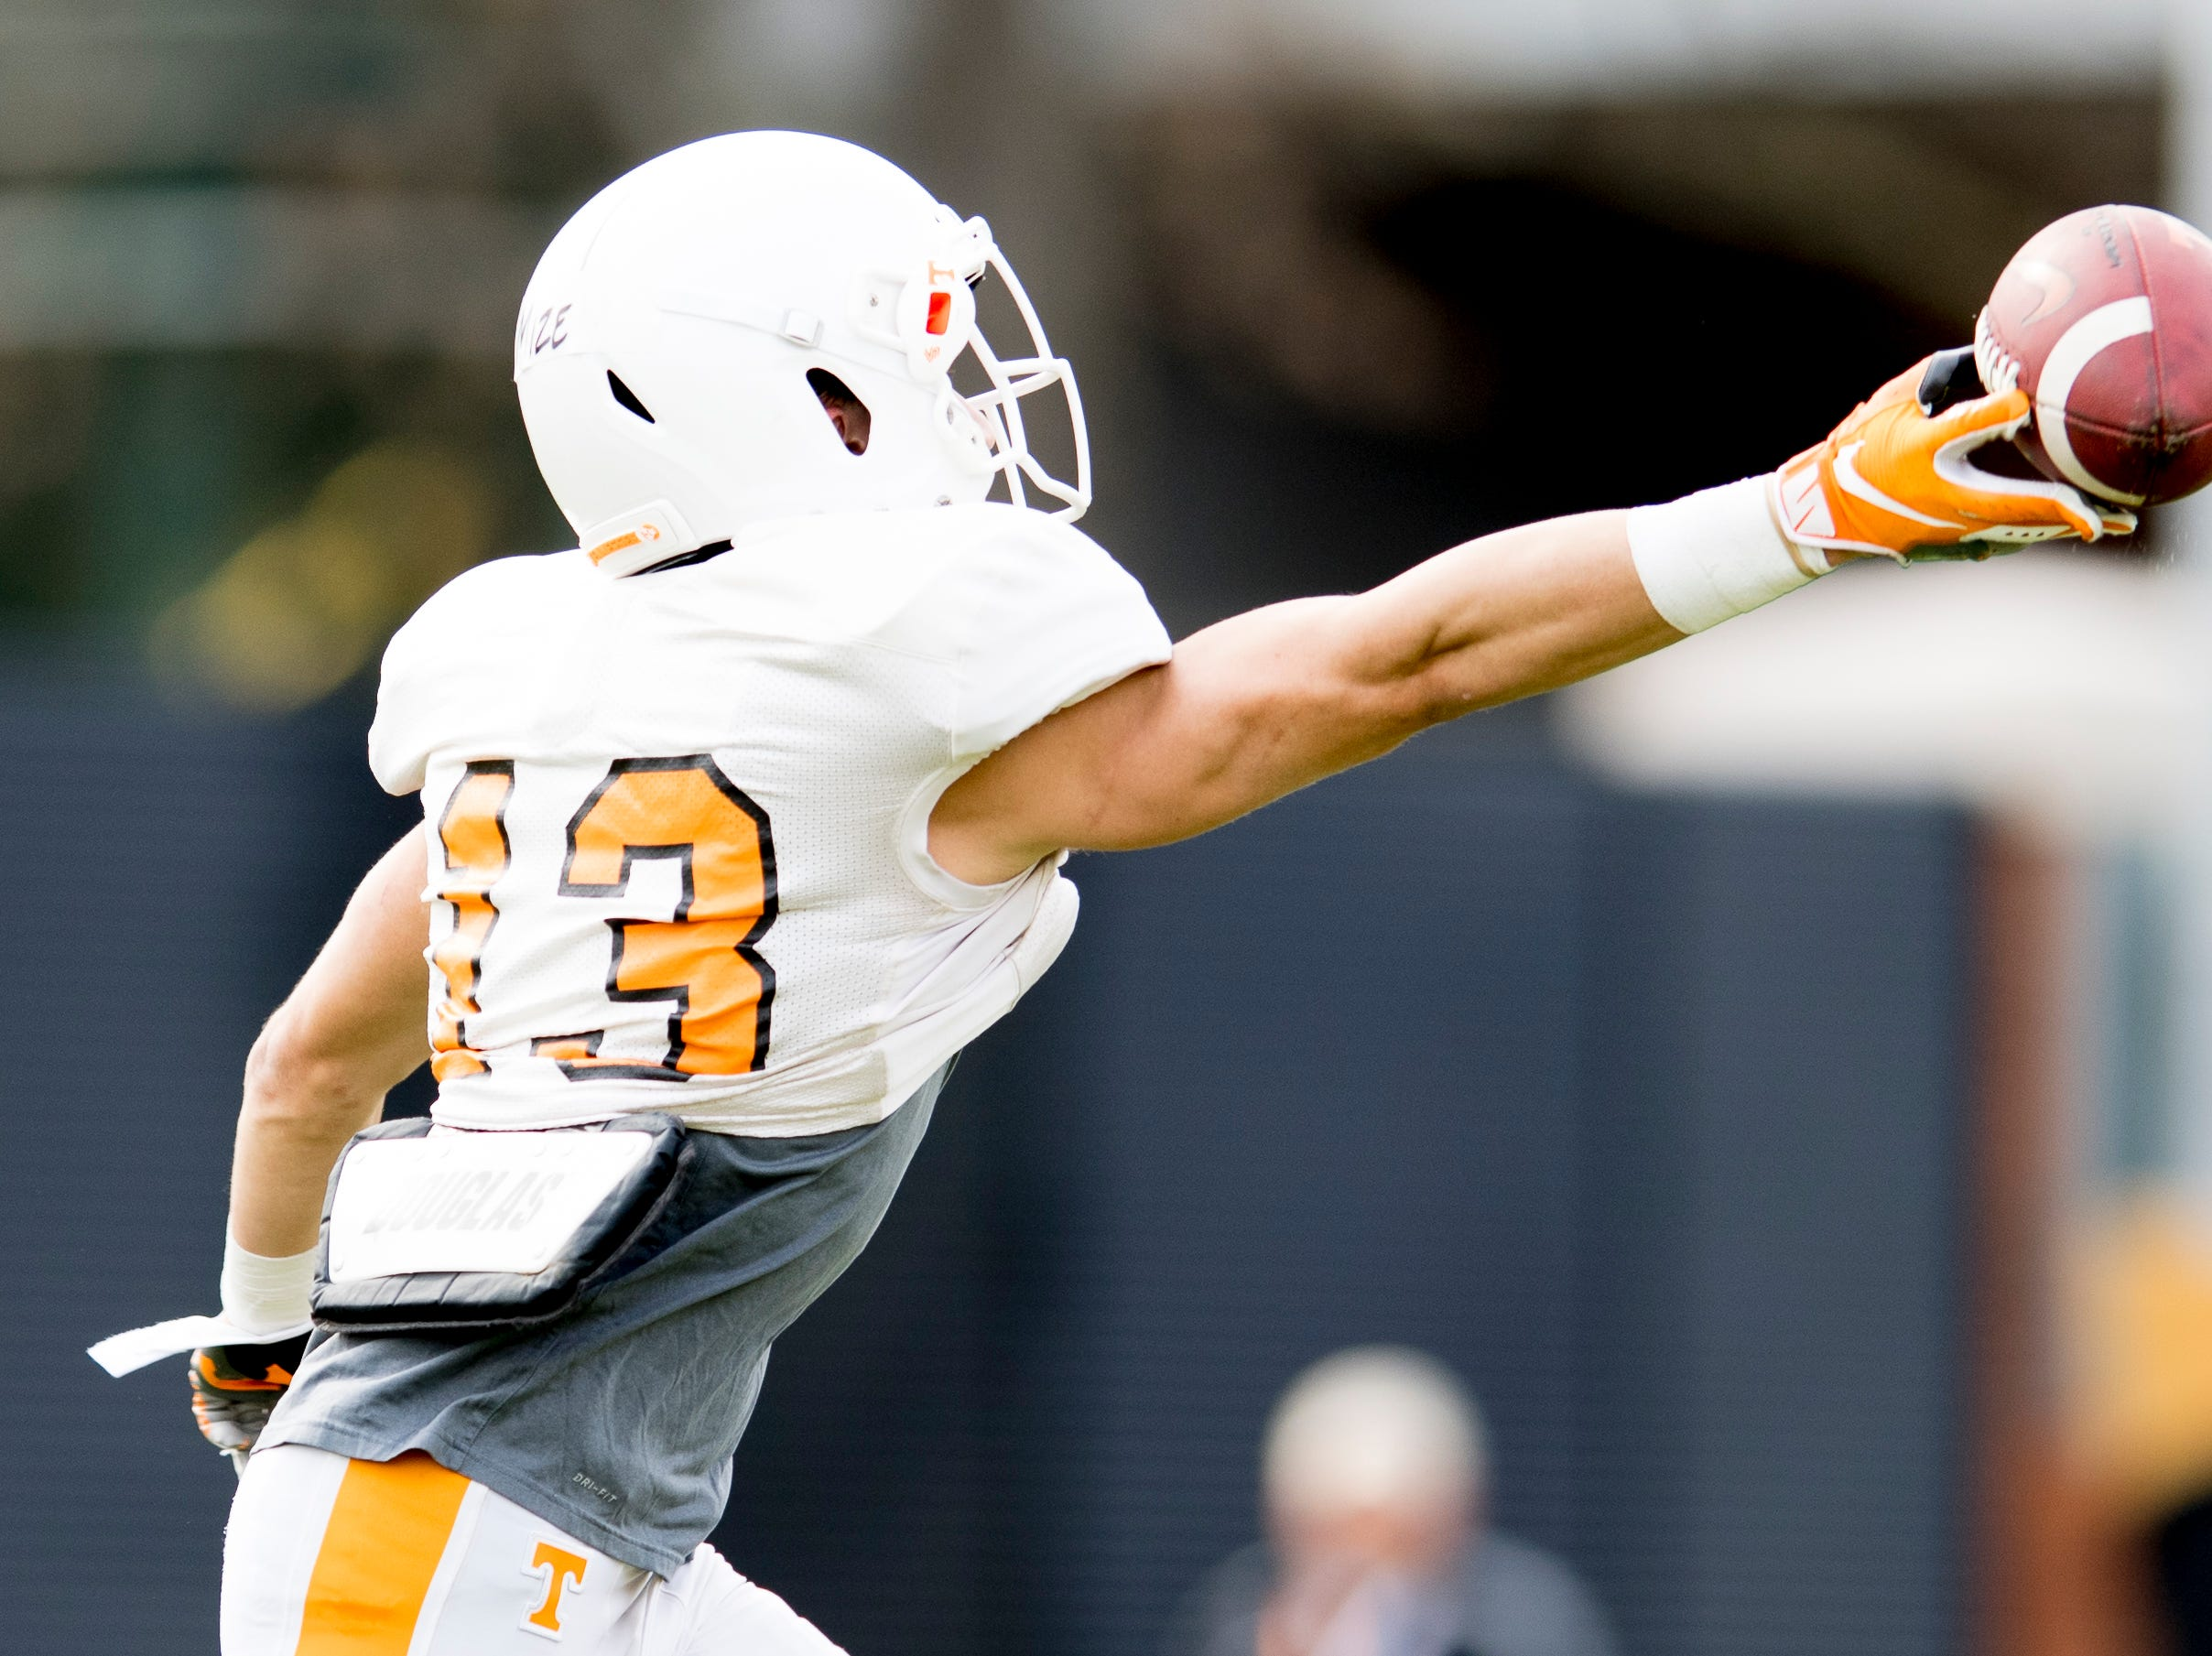 Tennessee wide receiver Richard Mize Jr. (13) misses a pass during Tennessee spring football practice at  Haslam Field in Knoxville, Tennessee on Wednesday, March 13, 2019.